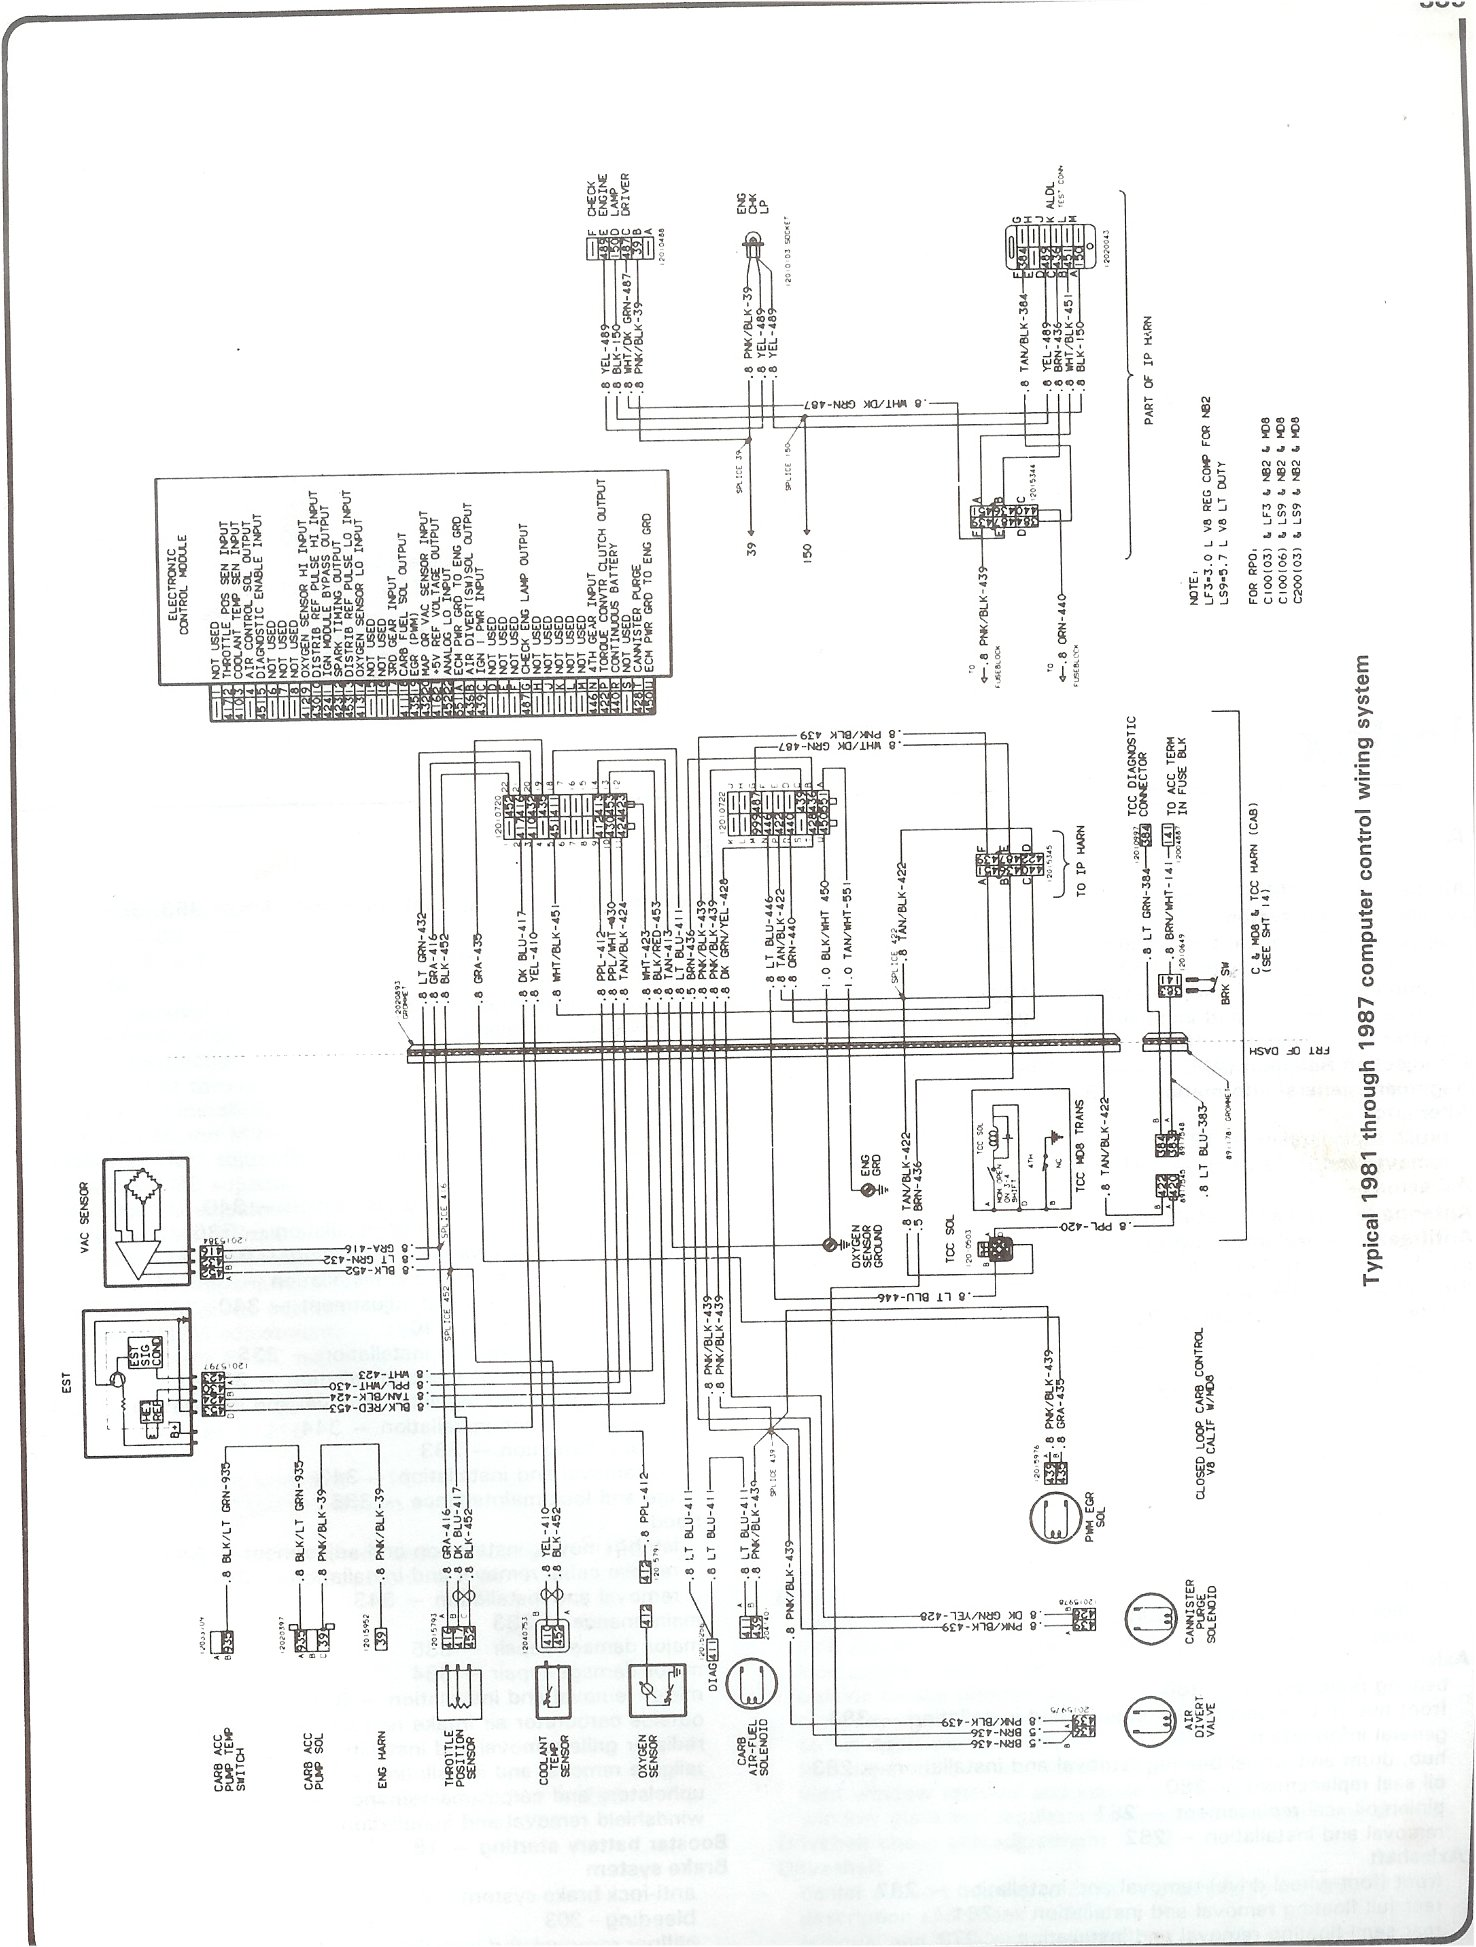 81 87_computer_control_wiring complete 73 87 wiring diagrams 1996 chevy truck ignition wiring diagram at webbmarketing.co